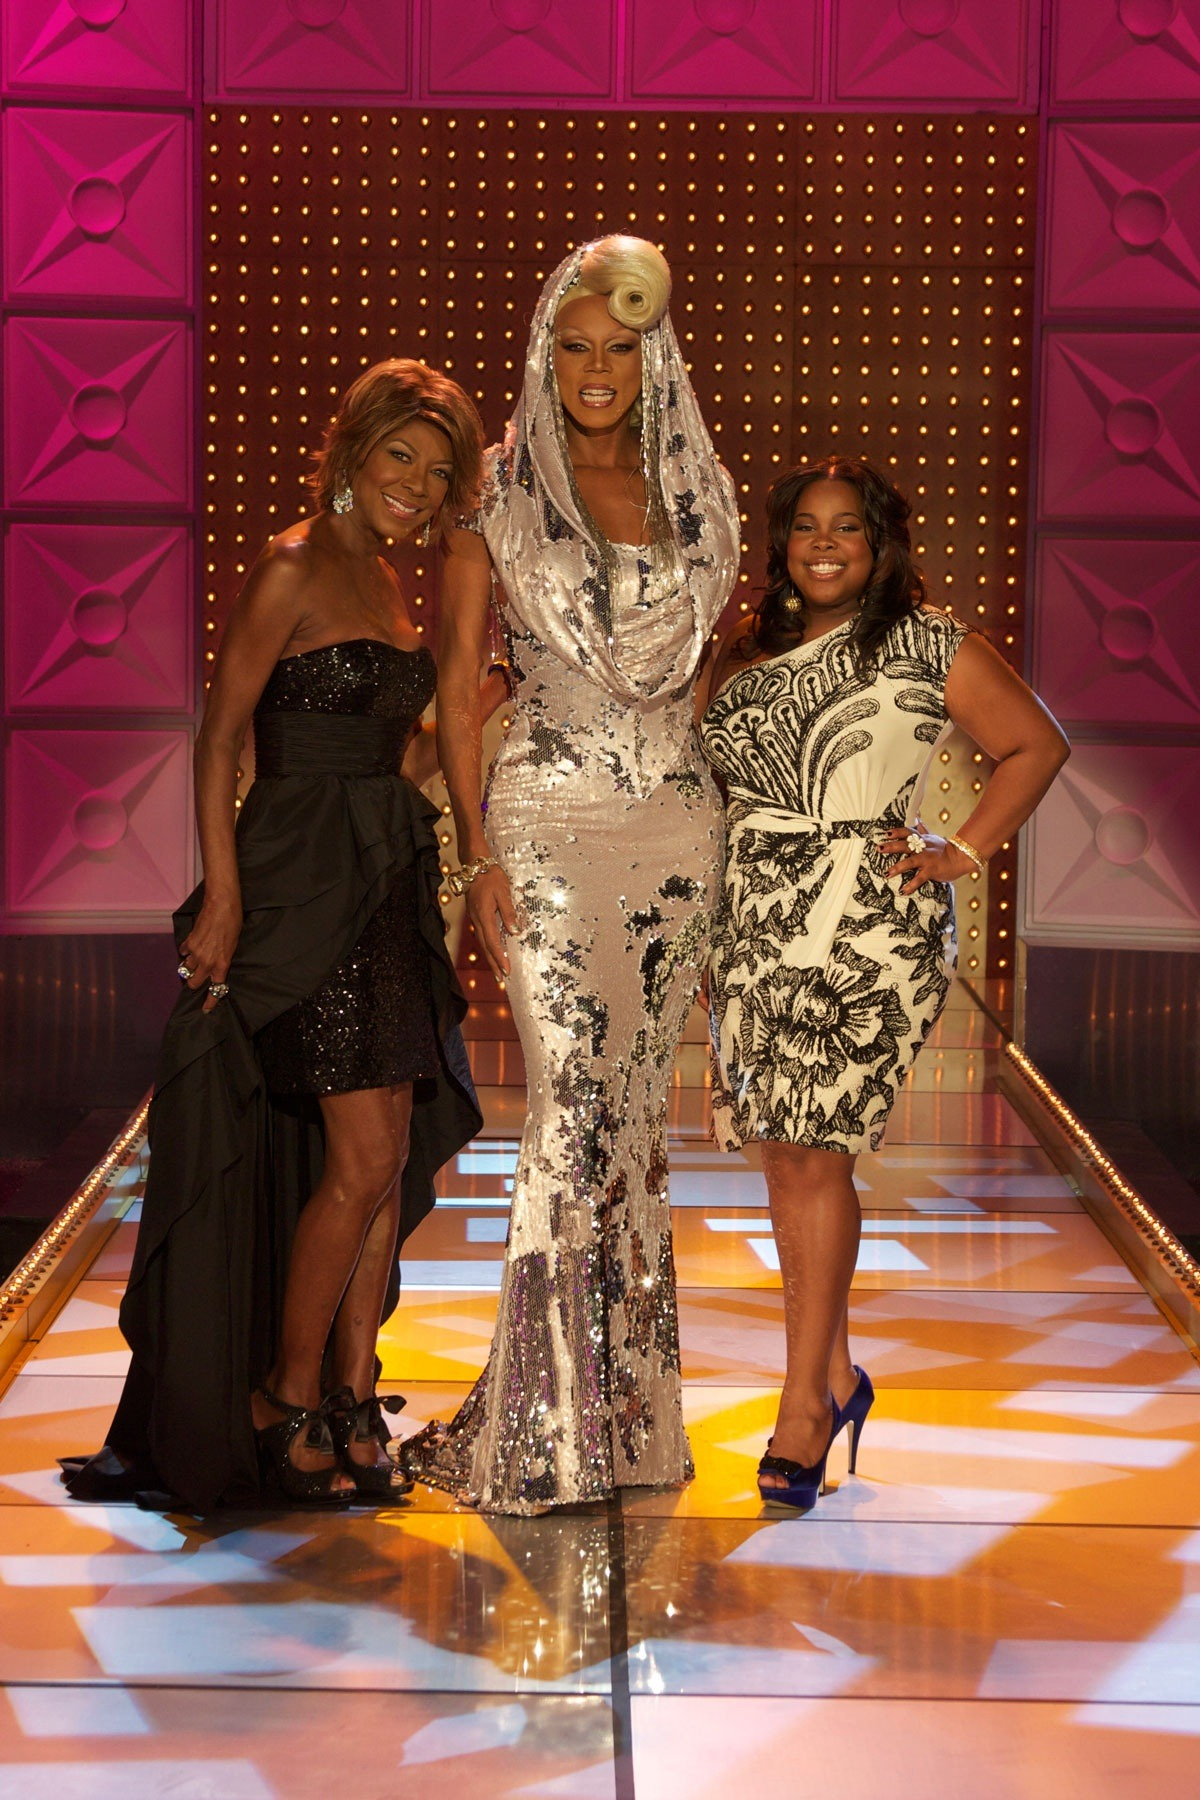 Natalie, Natalie Cole, RuPaul - Yes I will be a judge on Rupaul's DragRace tonight along with Natalie Cole! Tune in on LOGO